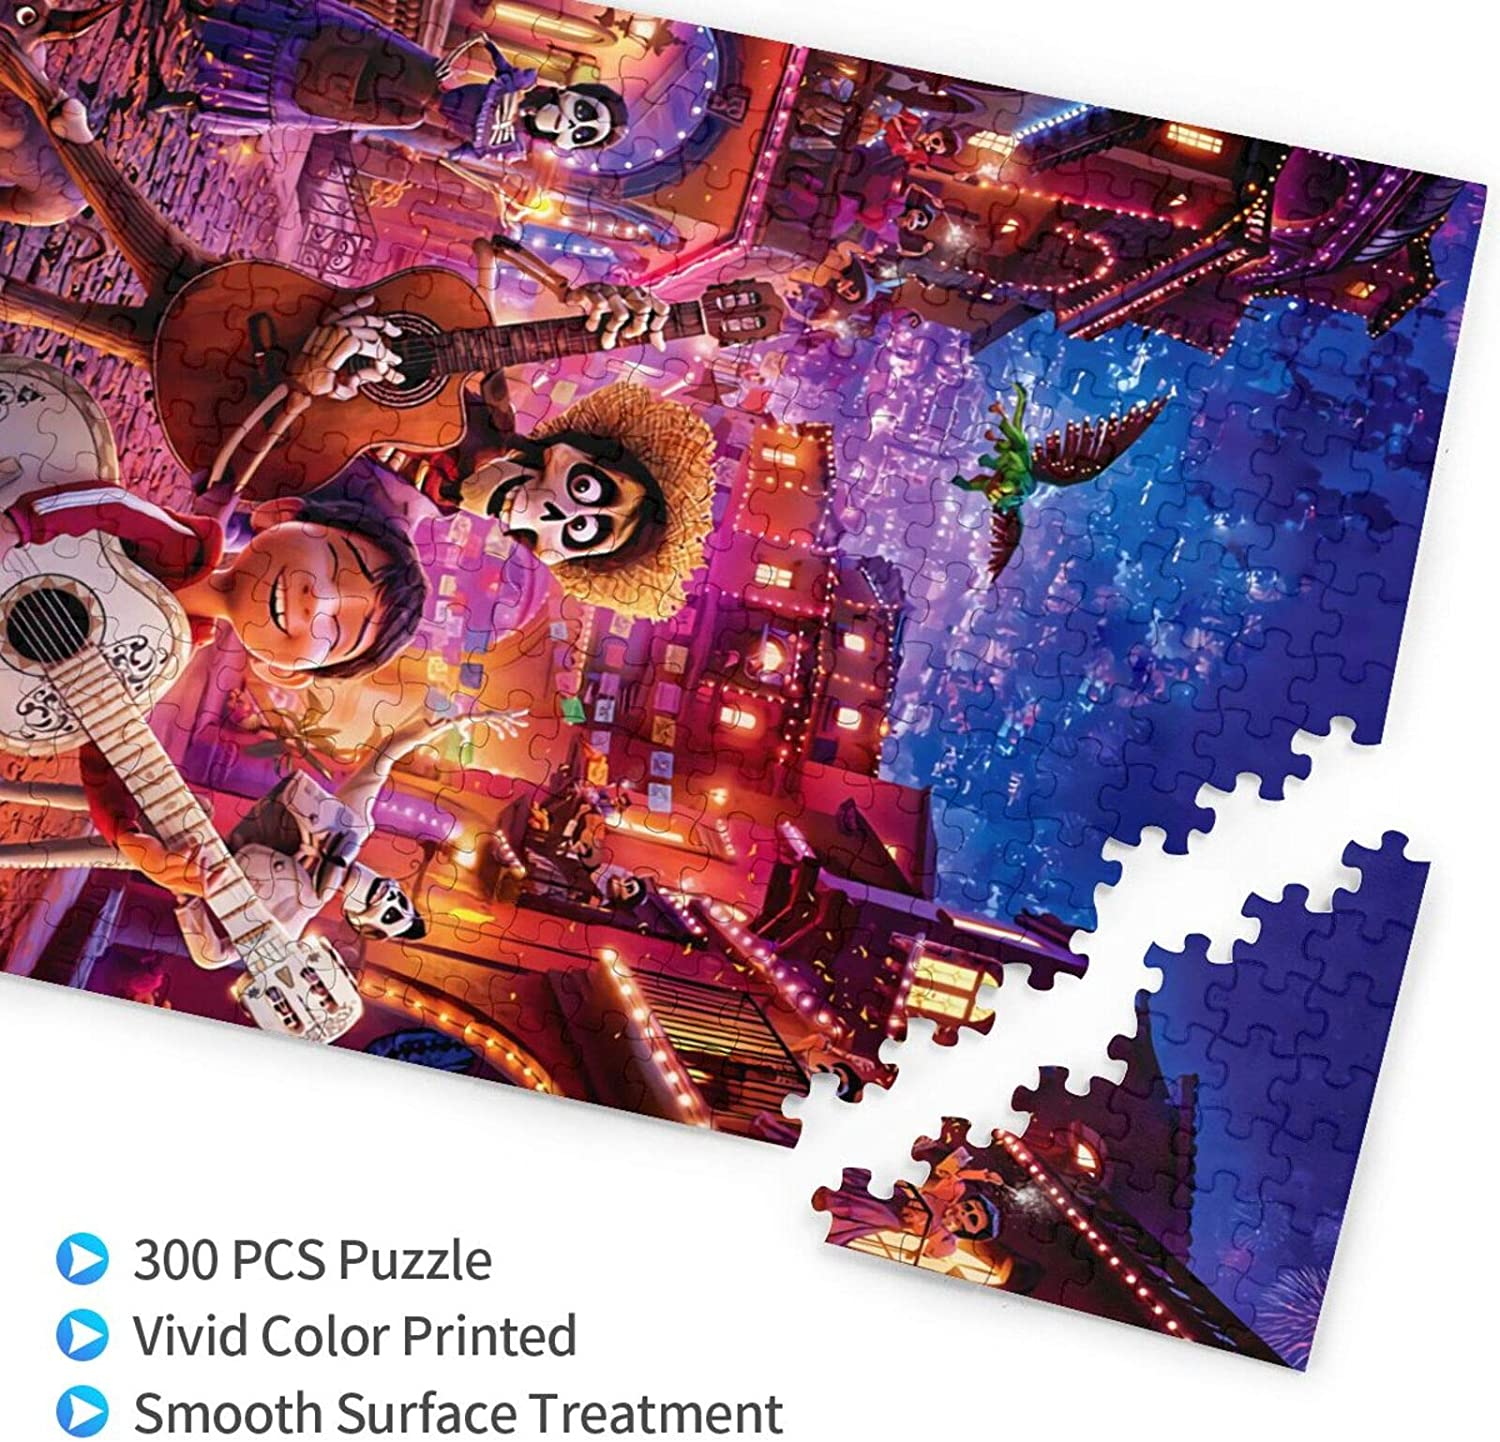 Coco Puzzle 300 Piece for Kids/&Adult Wooden Color Shapes Puzzles Boys /& Girls Educational Toys Gift